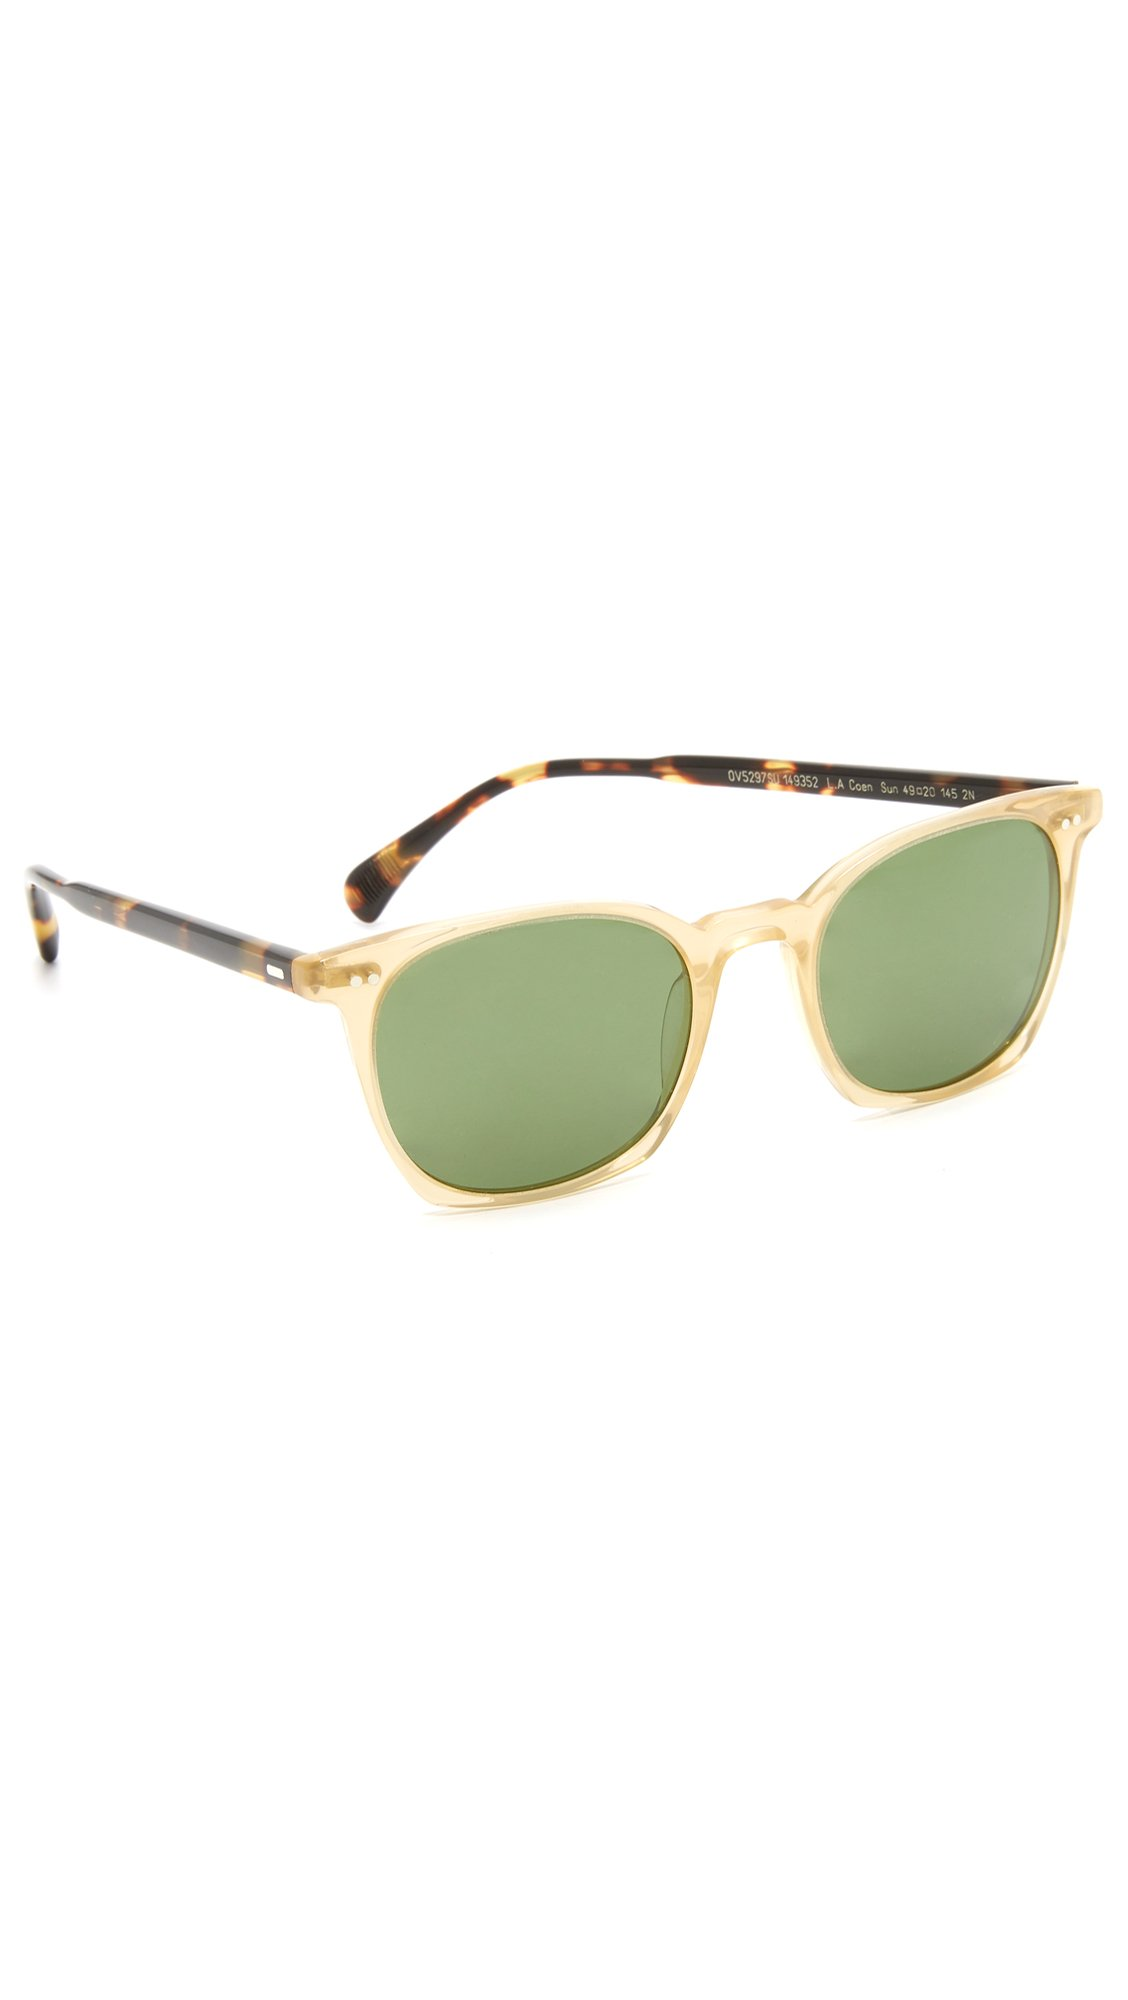 Oliver Peoples Eyewear Men's LA Coen Sunglasses, SLB/VDTB/Green, One Size by Oliver Peoples